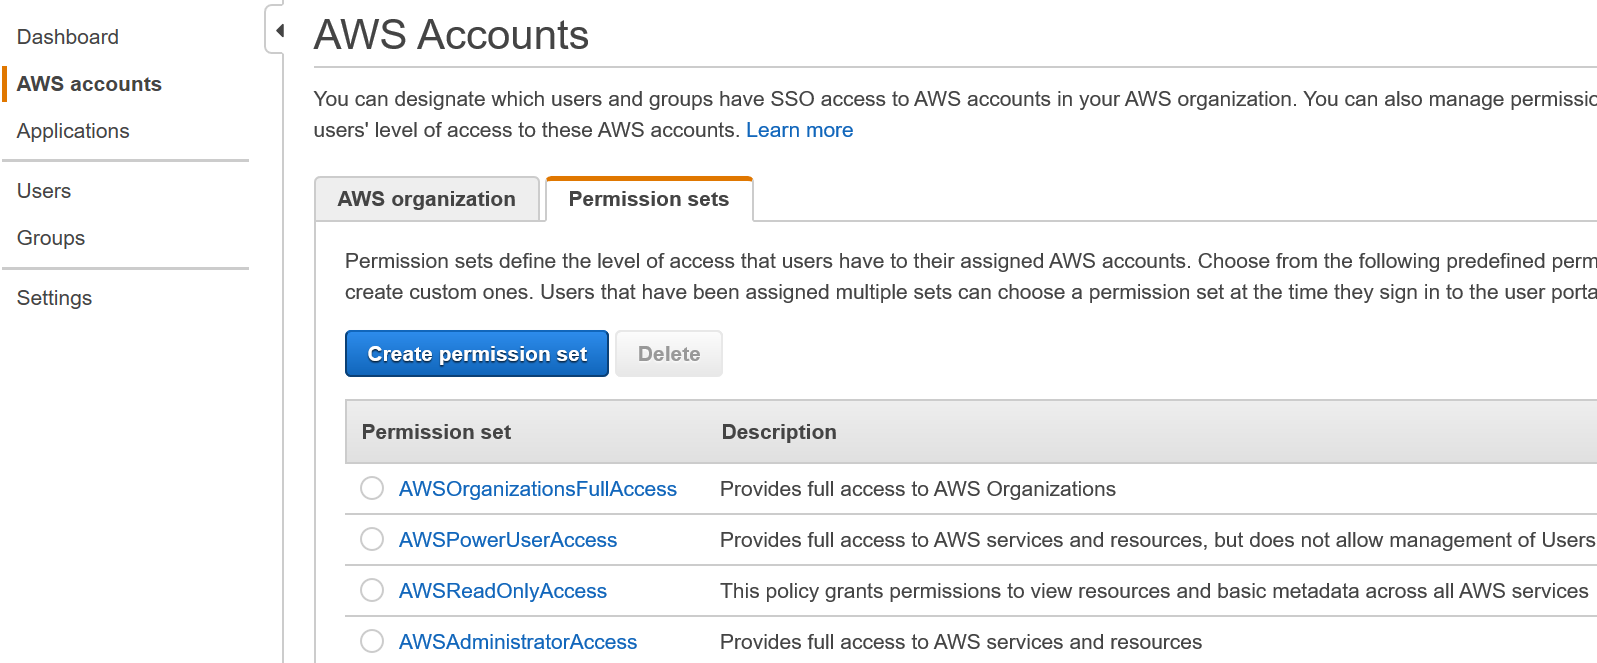 Figure 1: Permission sets tab in the SSO console